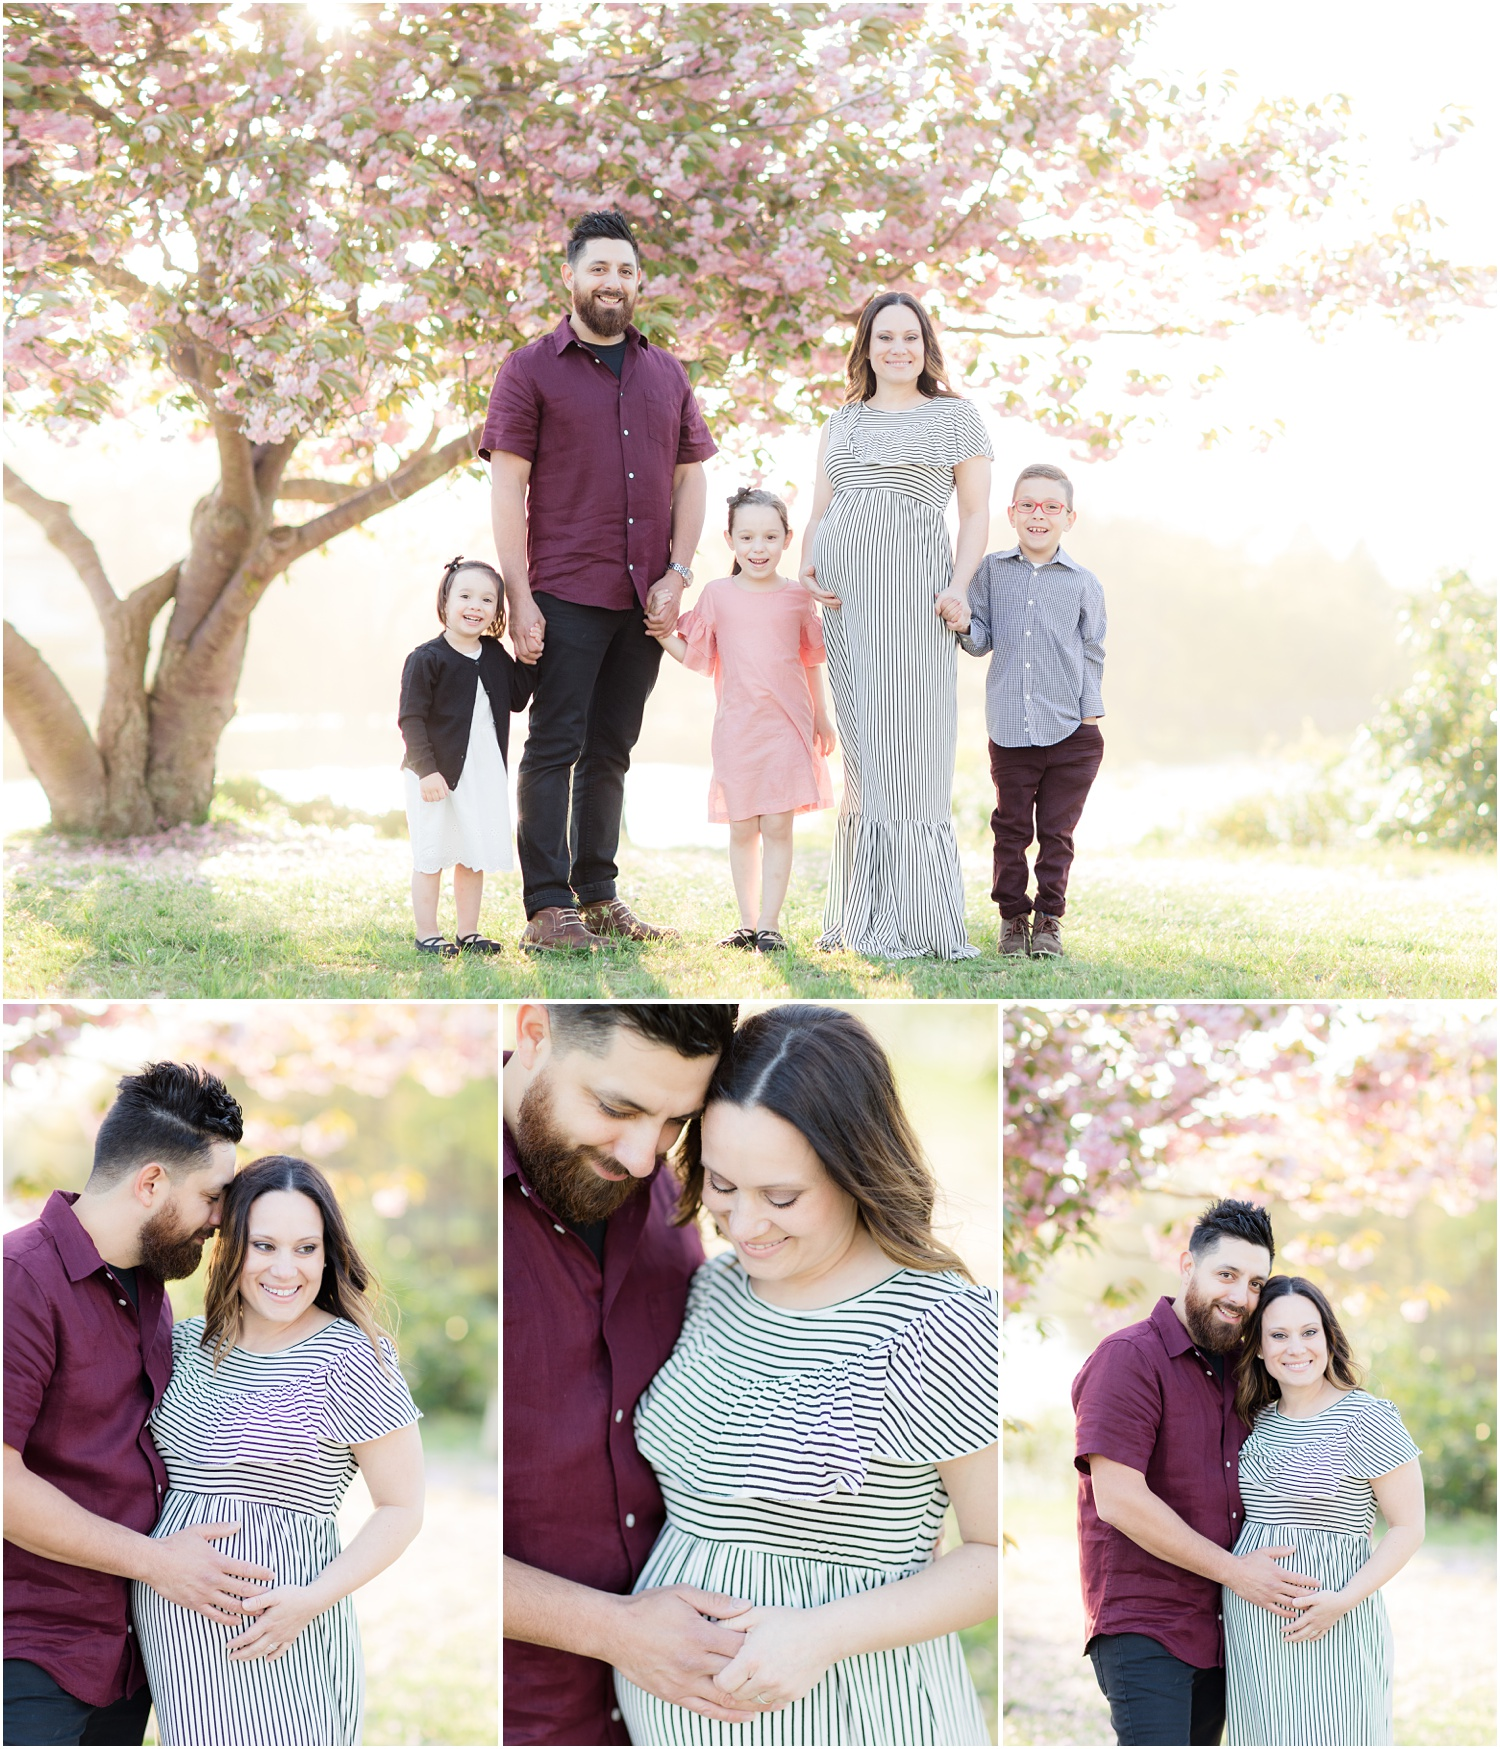 Pregnant mom and family photo with cherry blossoms at Divine Park in Spring Lake.